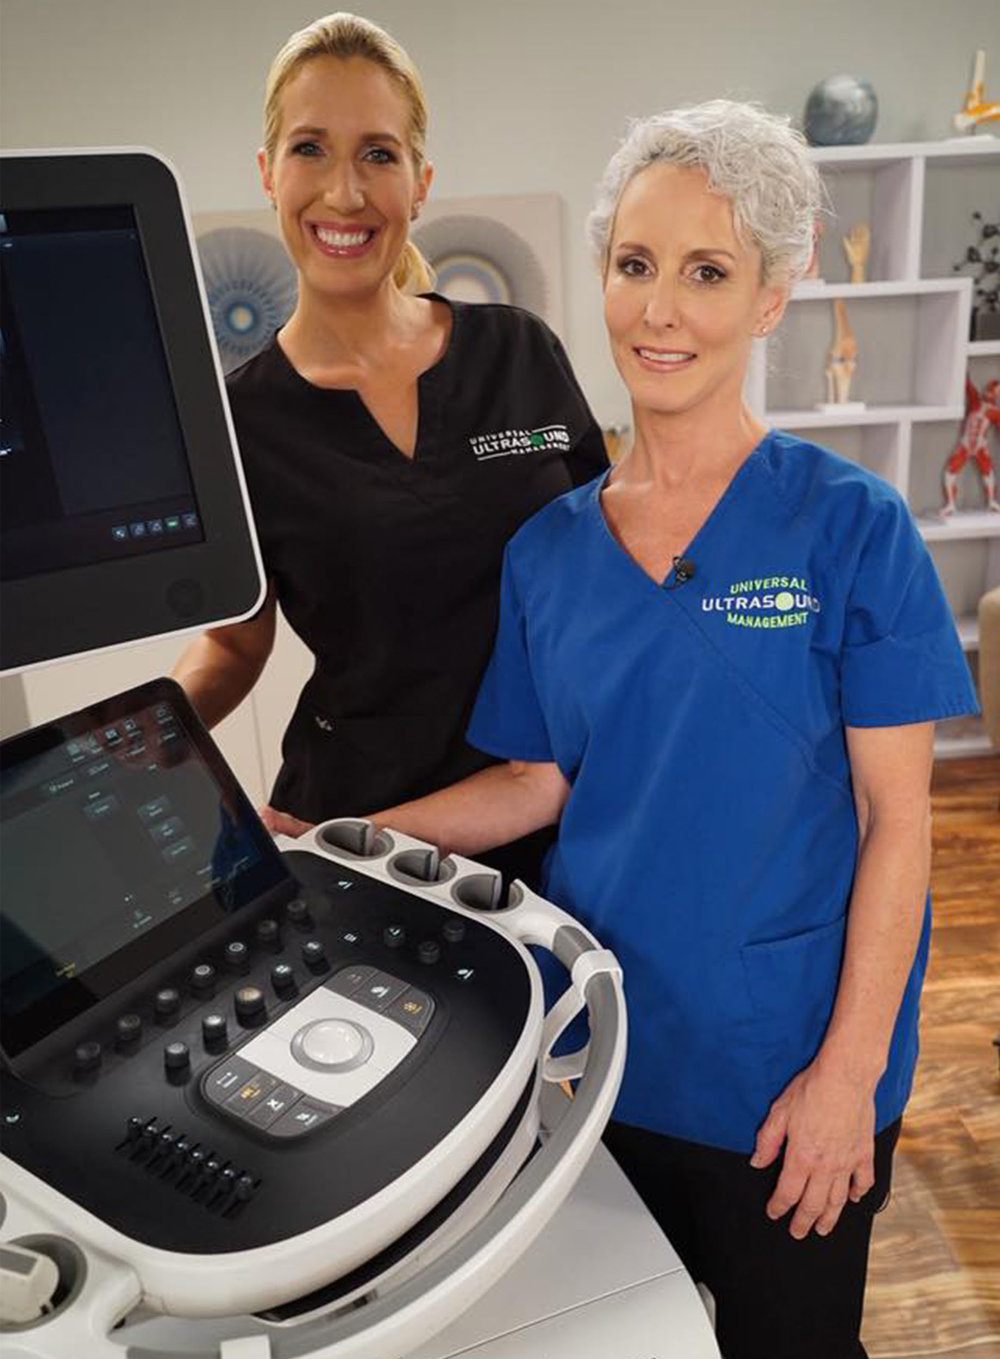 Our Approach - Ours is a universal approach to ultrasound technology, where we teach, train and advise all professional technicians to image and diagnose utilizing the highest standards of ultrasound application. The patient's health is at the heart of all we do.Learn More